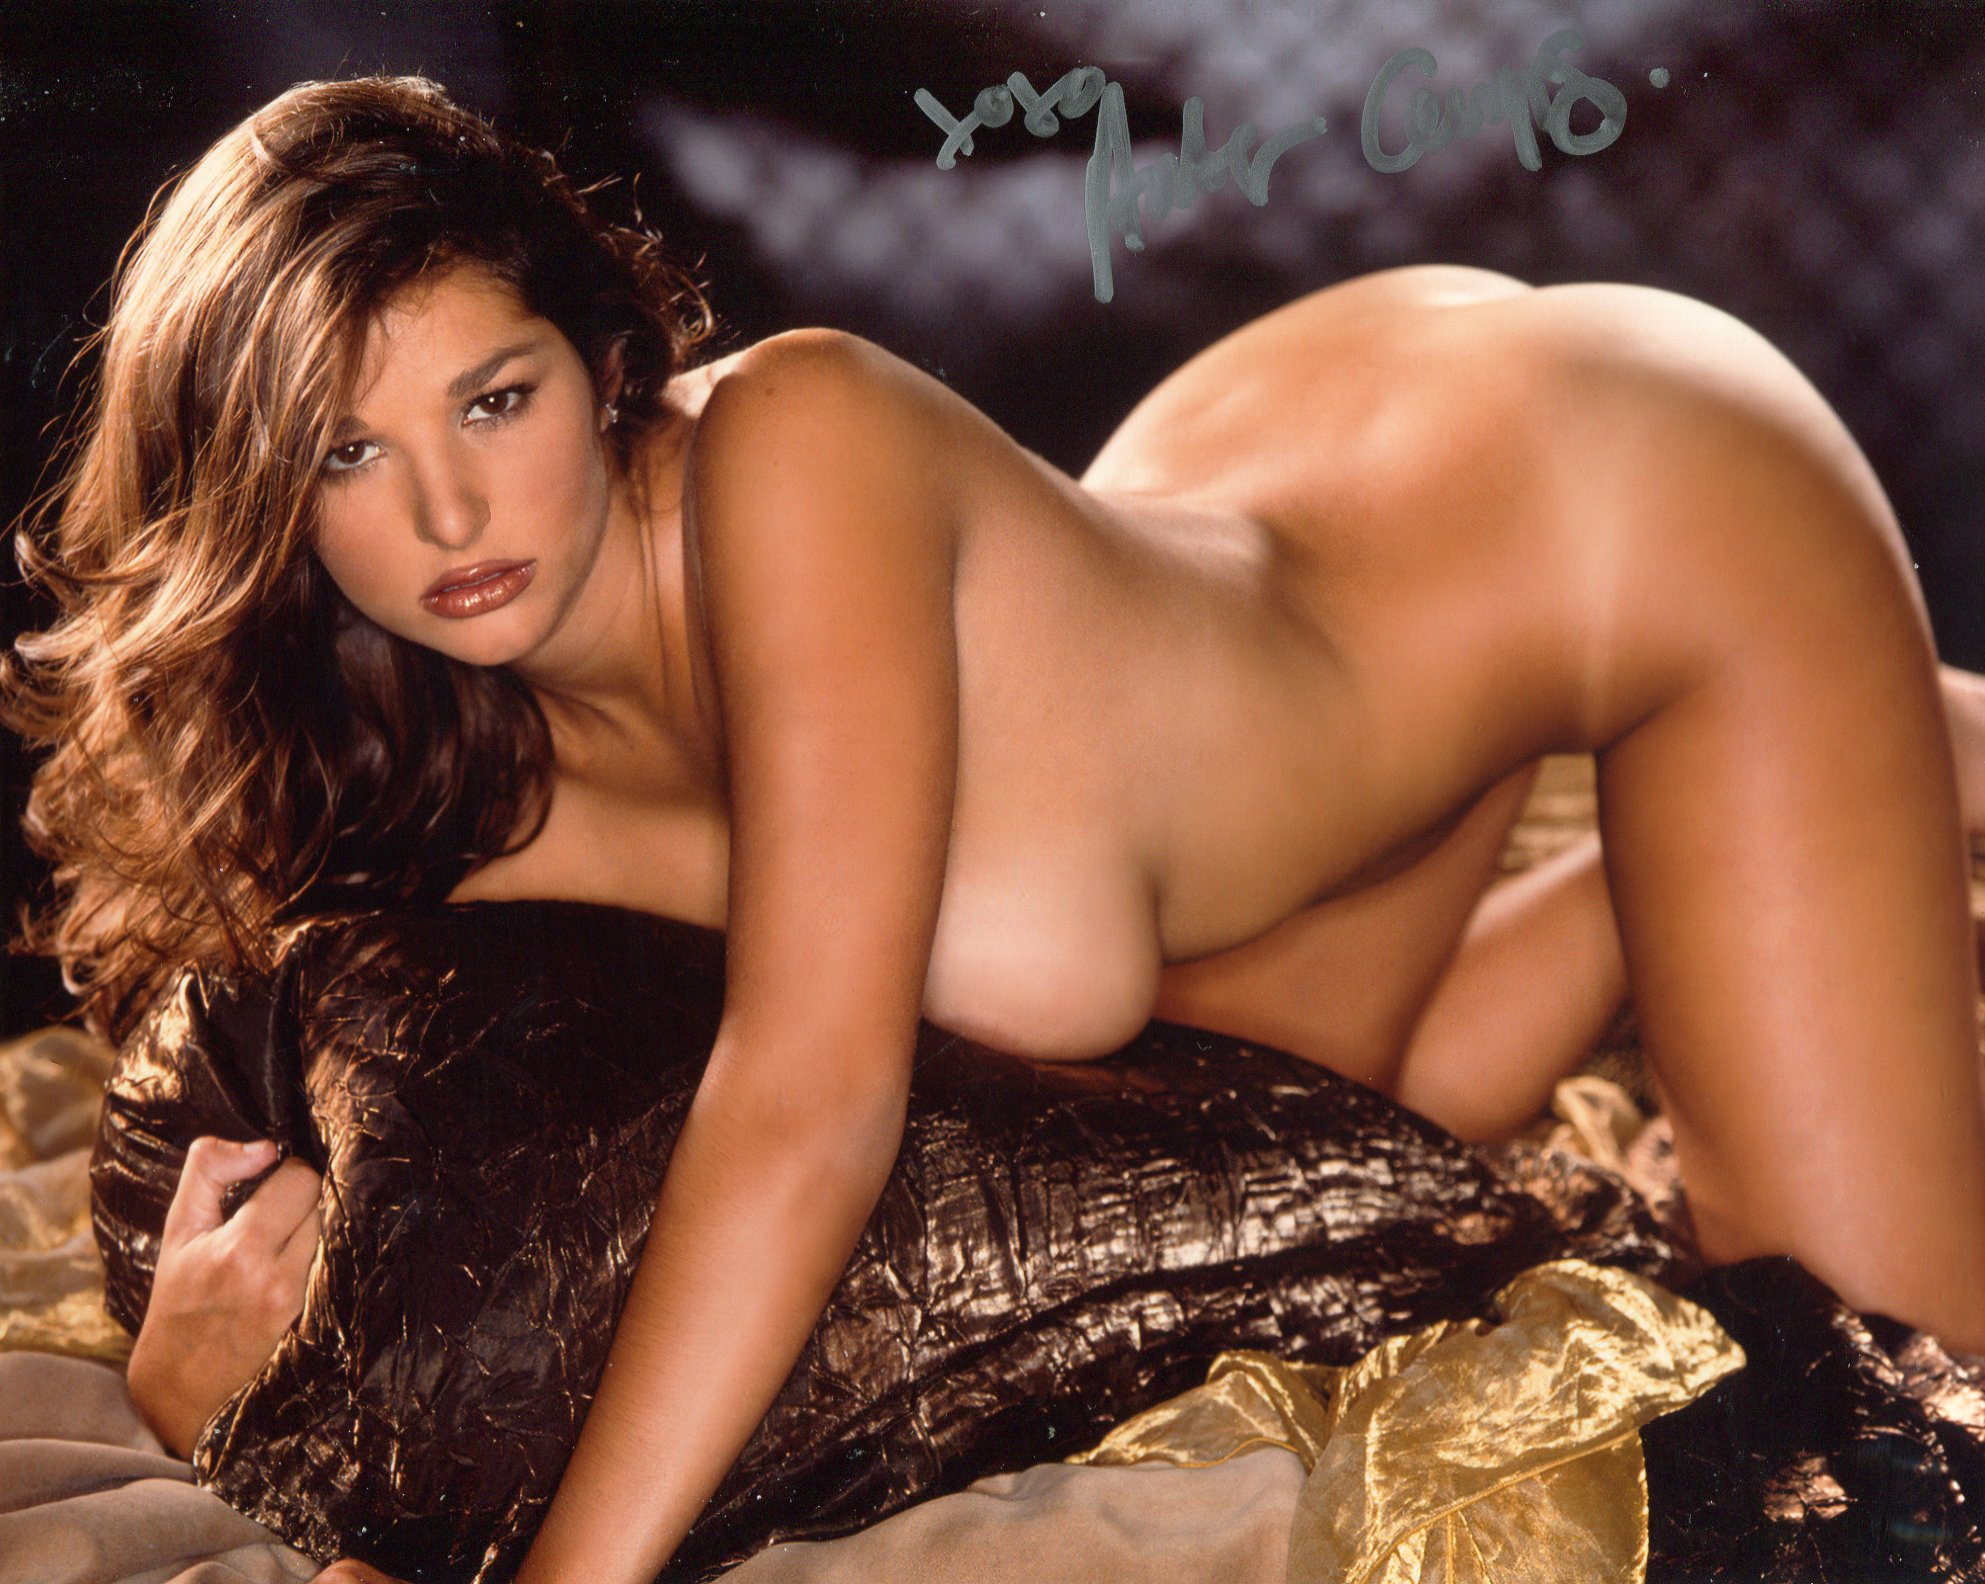 Playboy playmate Amber Campisi signed 8x10 photo. Good condition. All autographs come with a